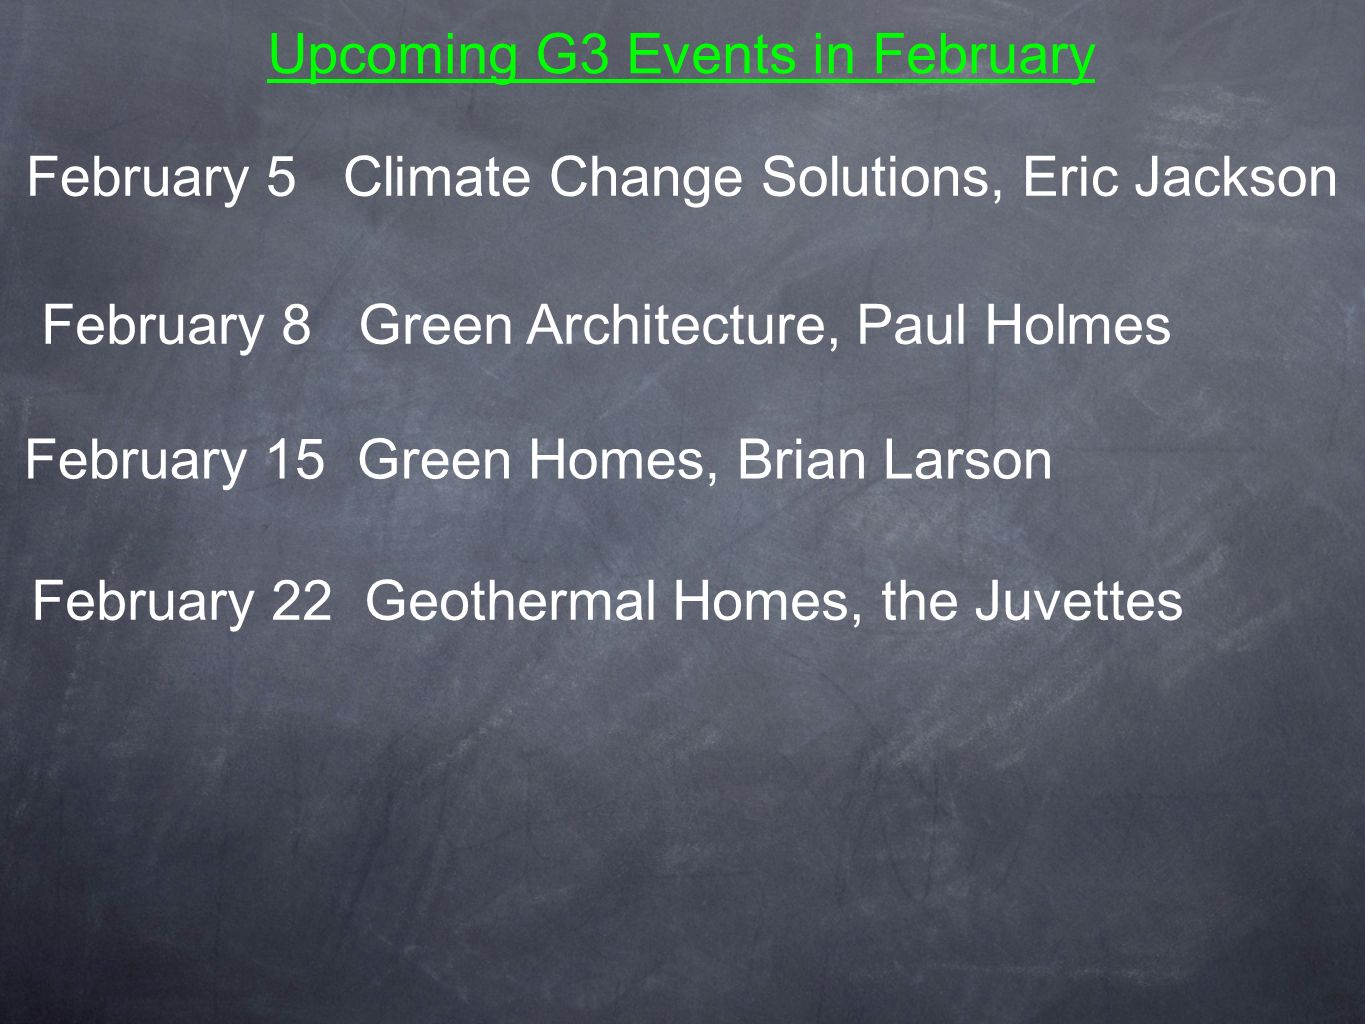 Upcoming G3 Events in February February 8 Green Architecture, Paul Holmes February 15 Green Homes, Brian Larson February 22 Geothermal Homes, the Juvettes February 5 Climate Change Solutions, Eric Jackson